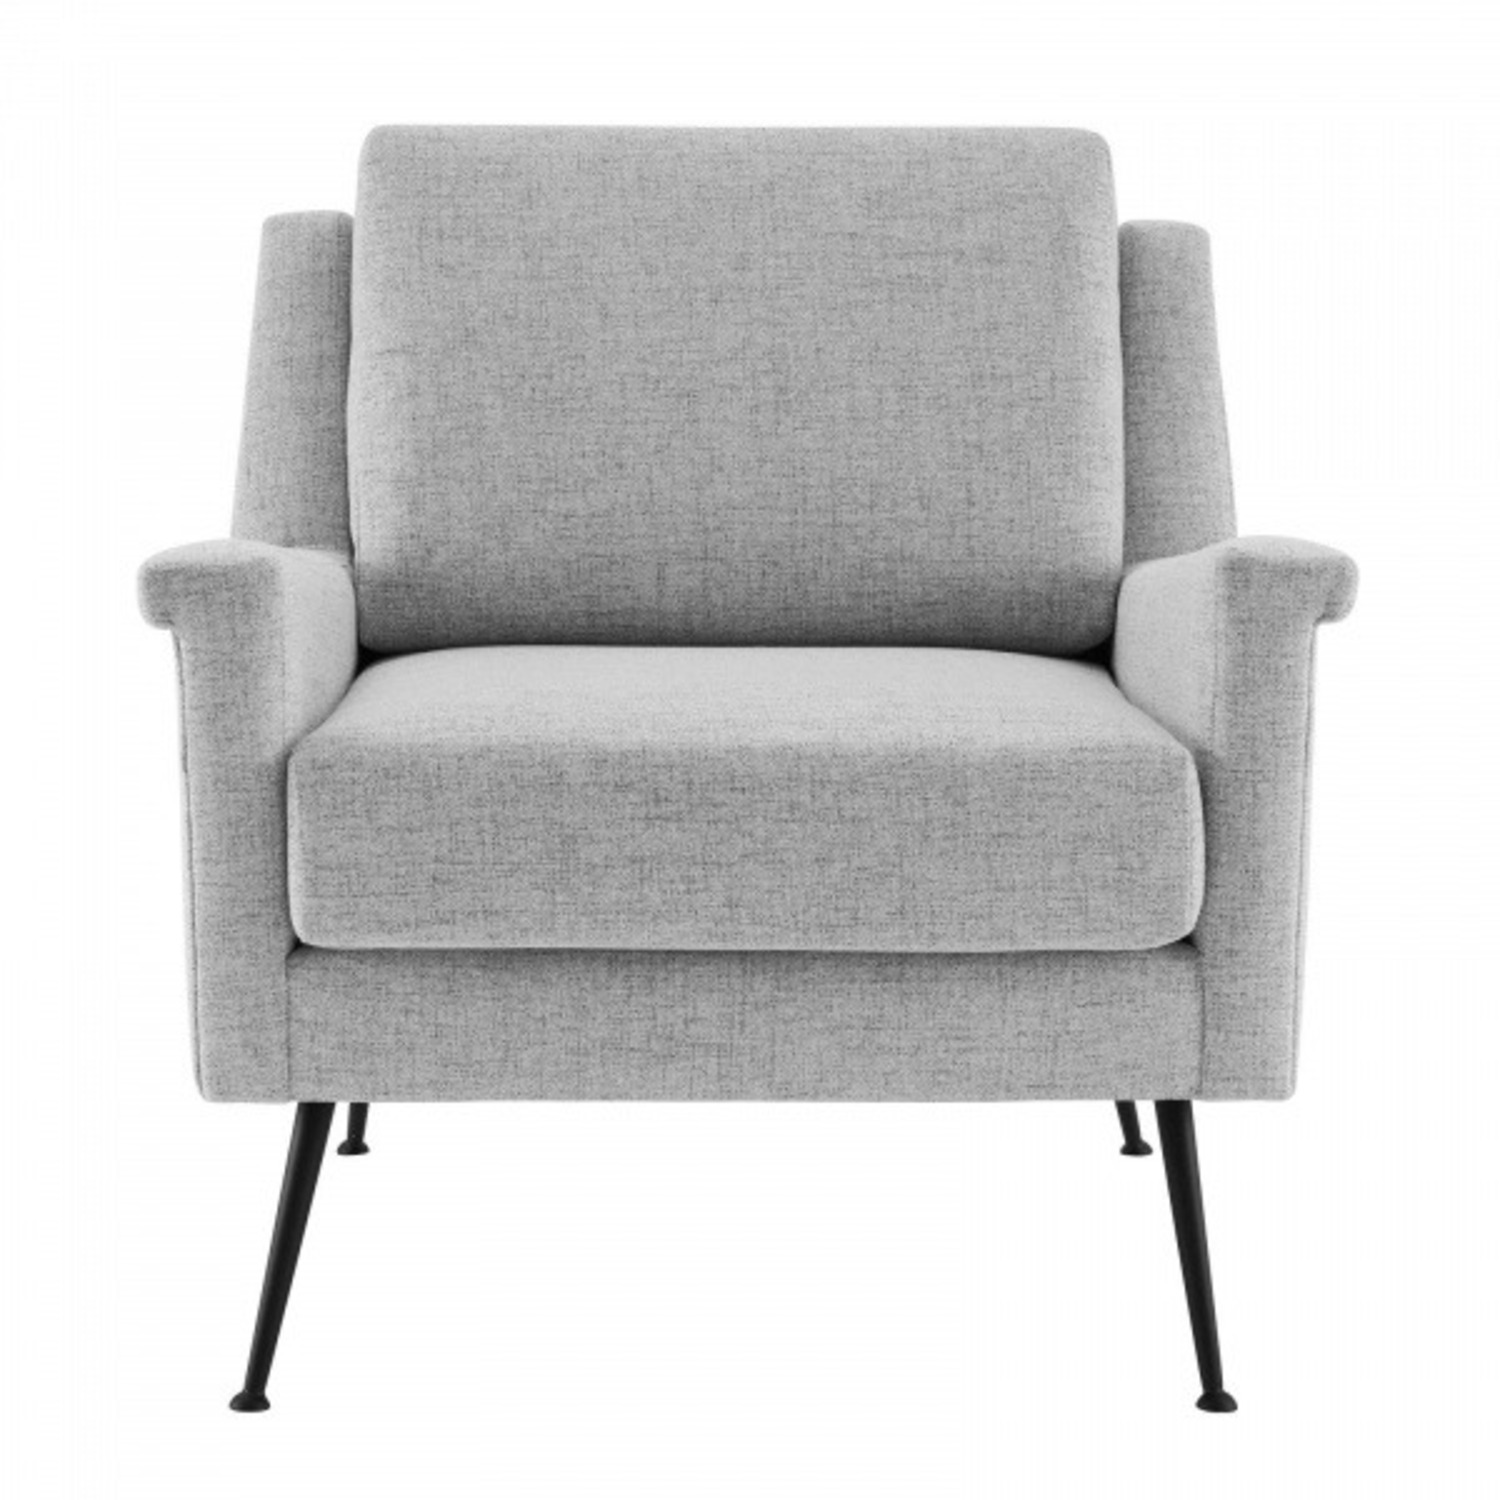 Modern Accent Armchair In Light Gray Fabric - image-0